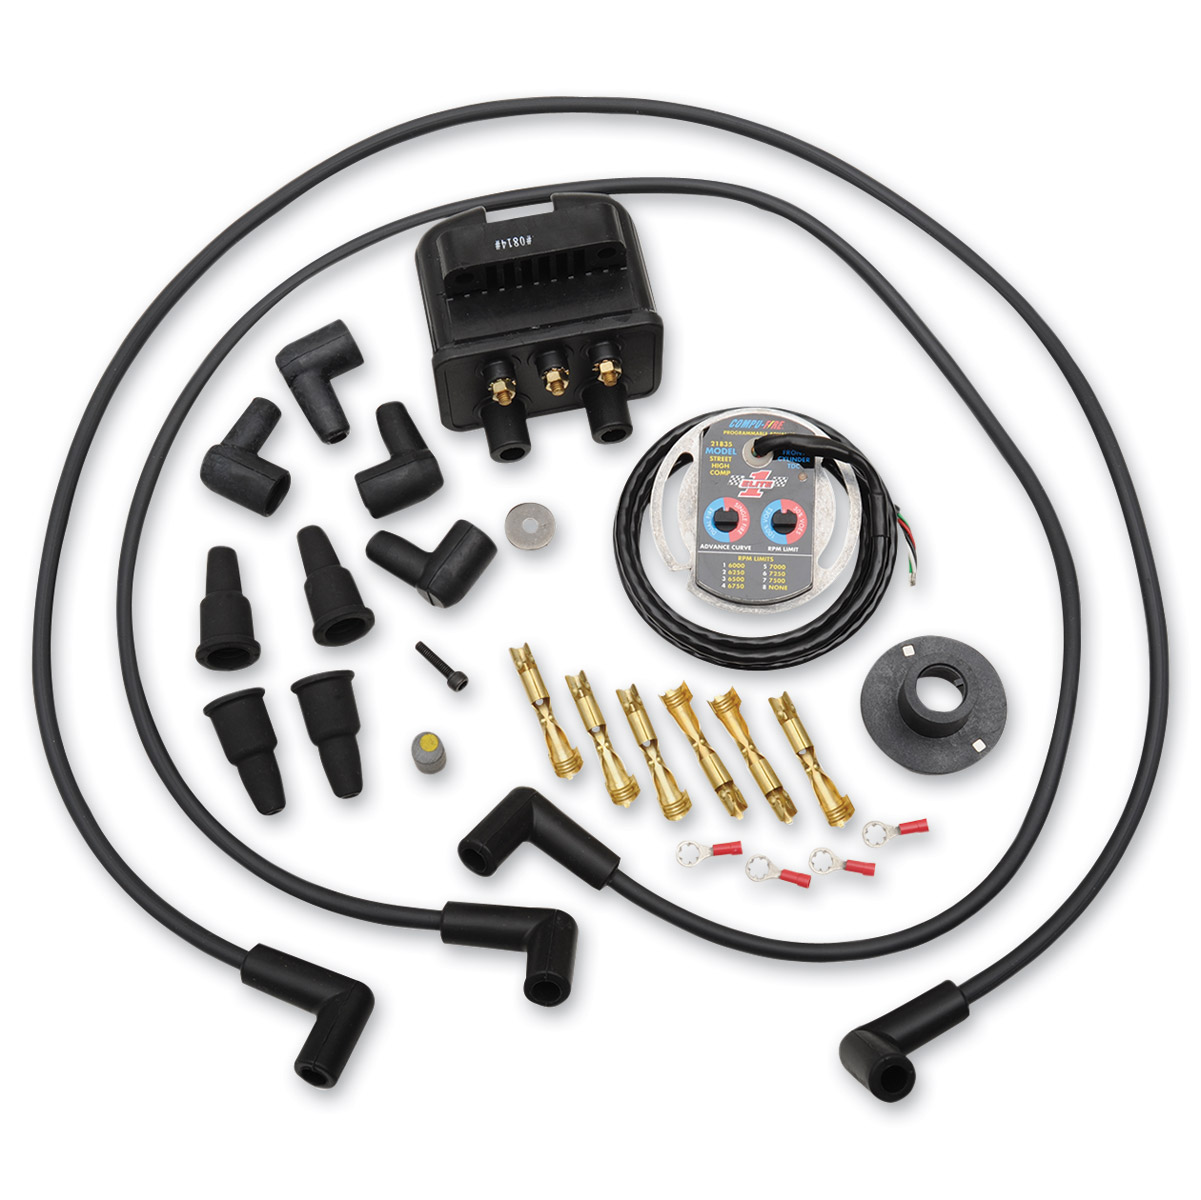 Compu-Fire Single-Fire Ignition System for Kick Start - 22001